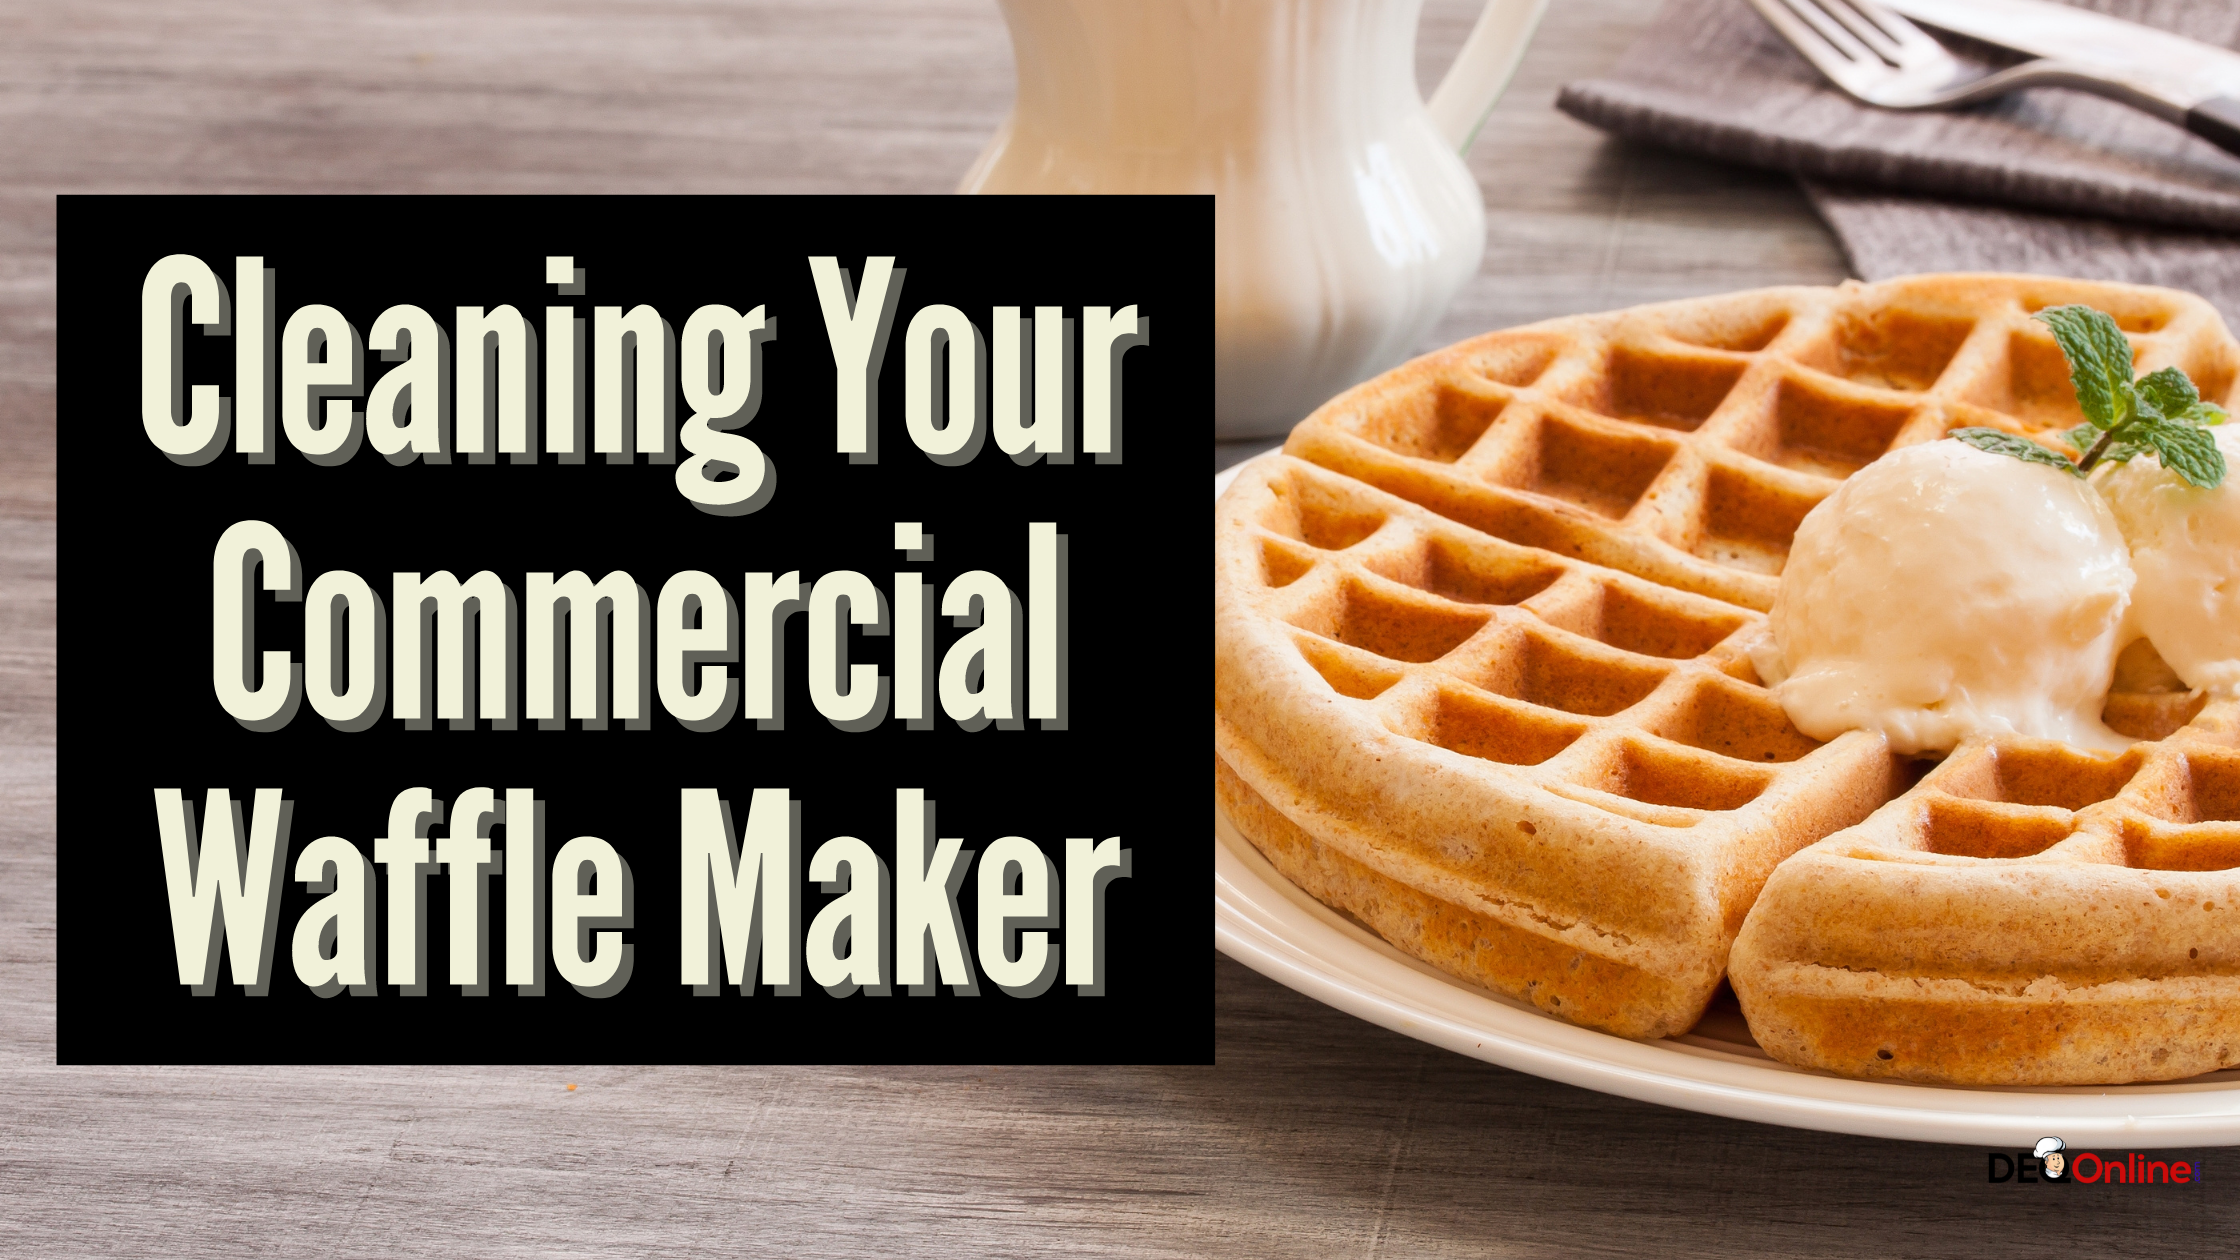 Cleaning Your Commercial Waffle Maker